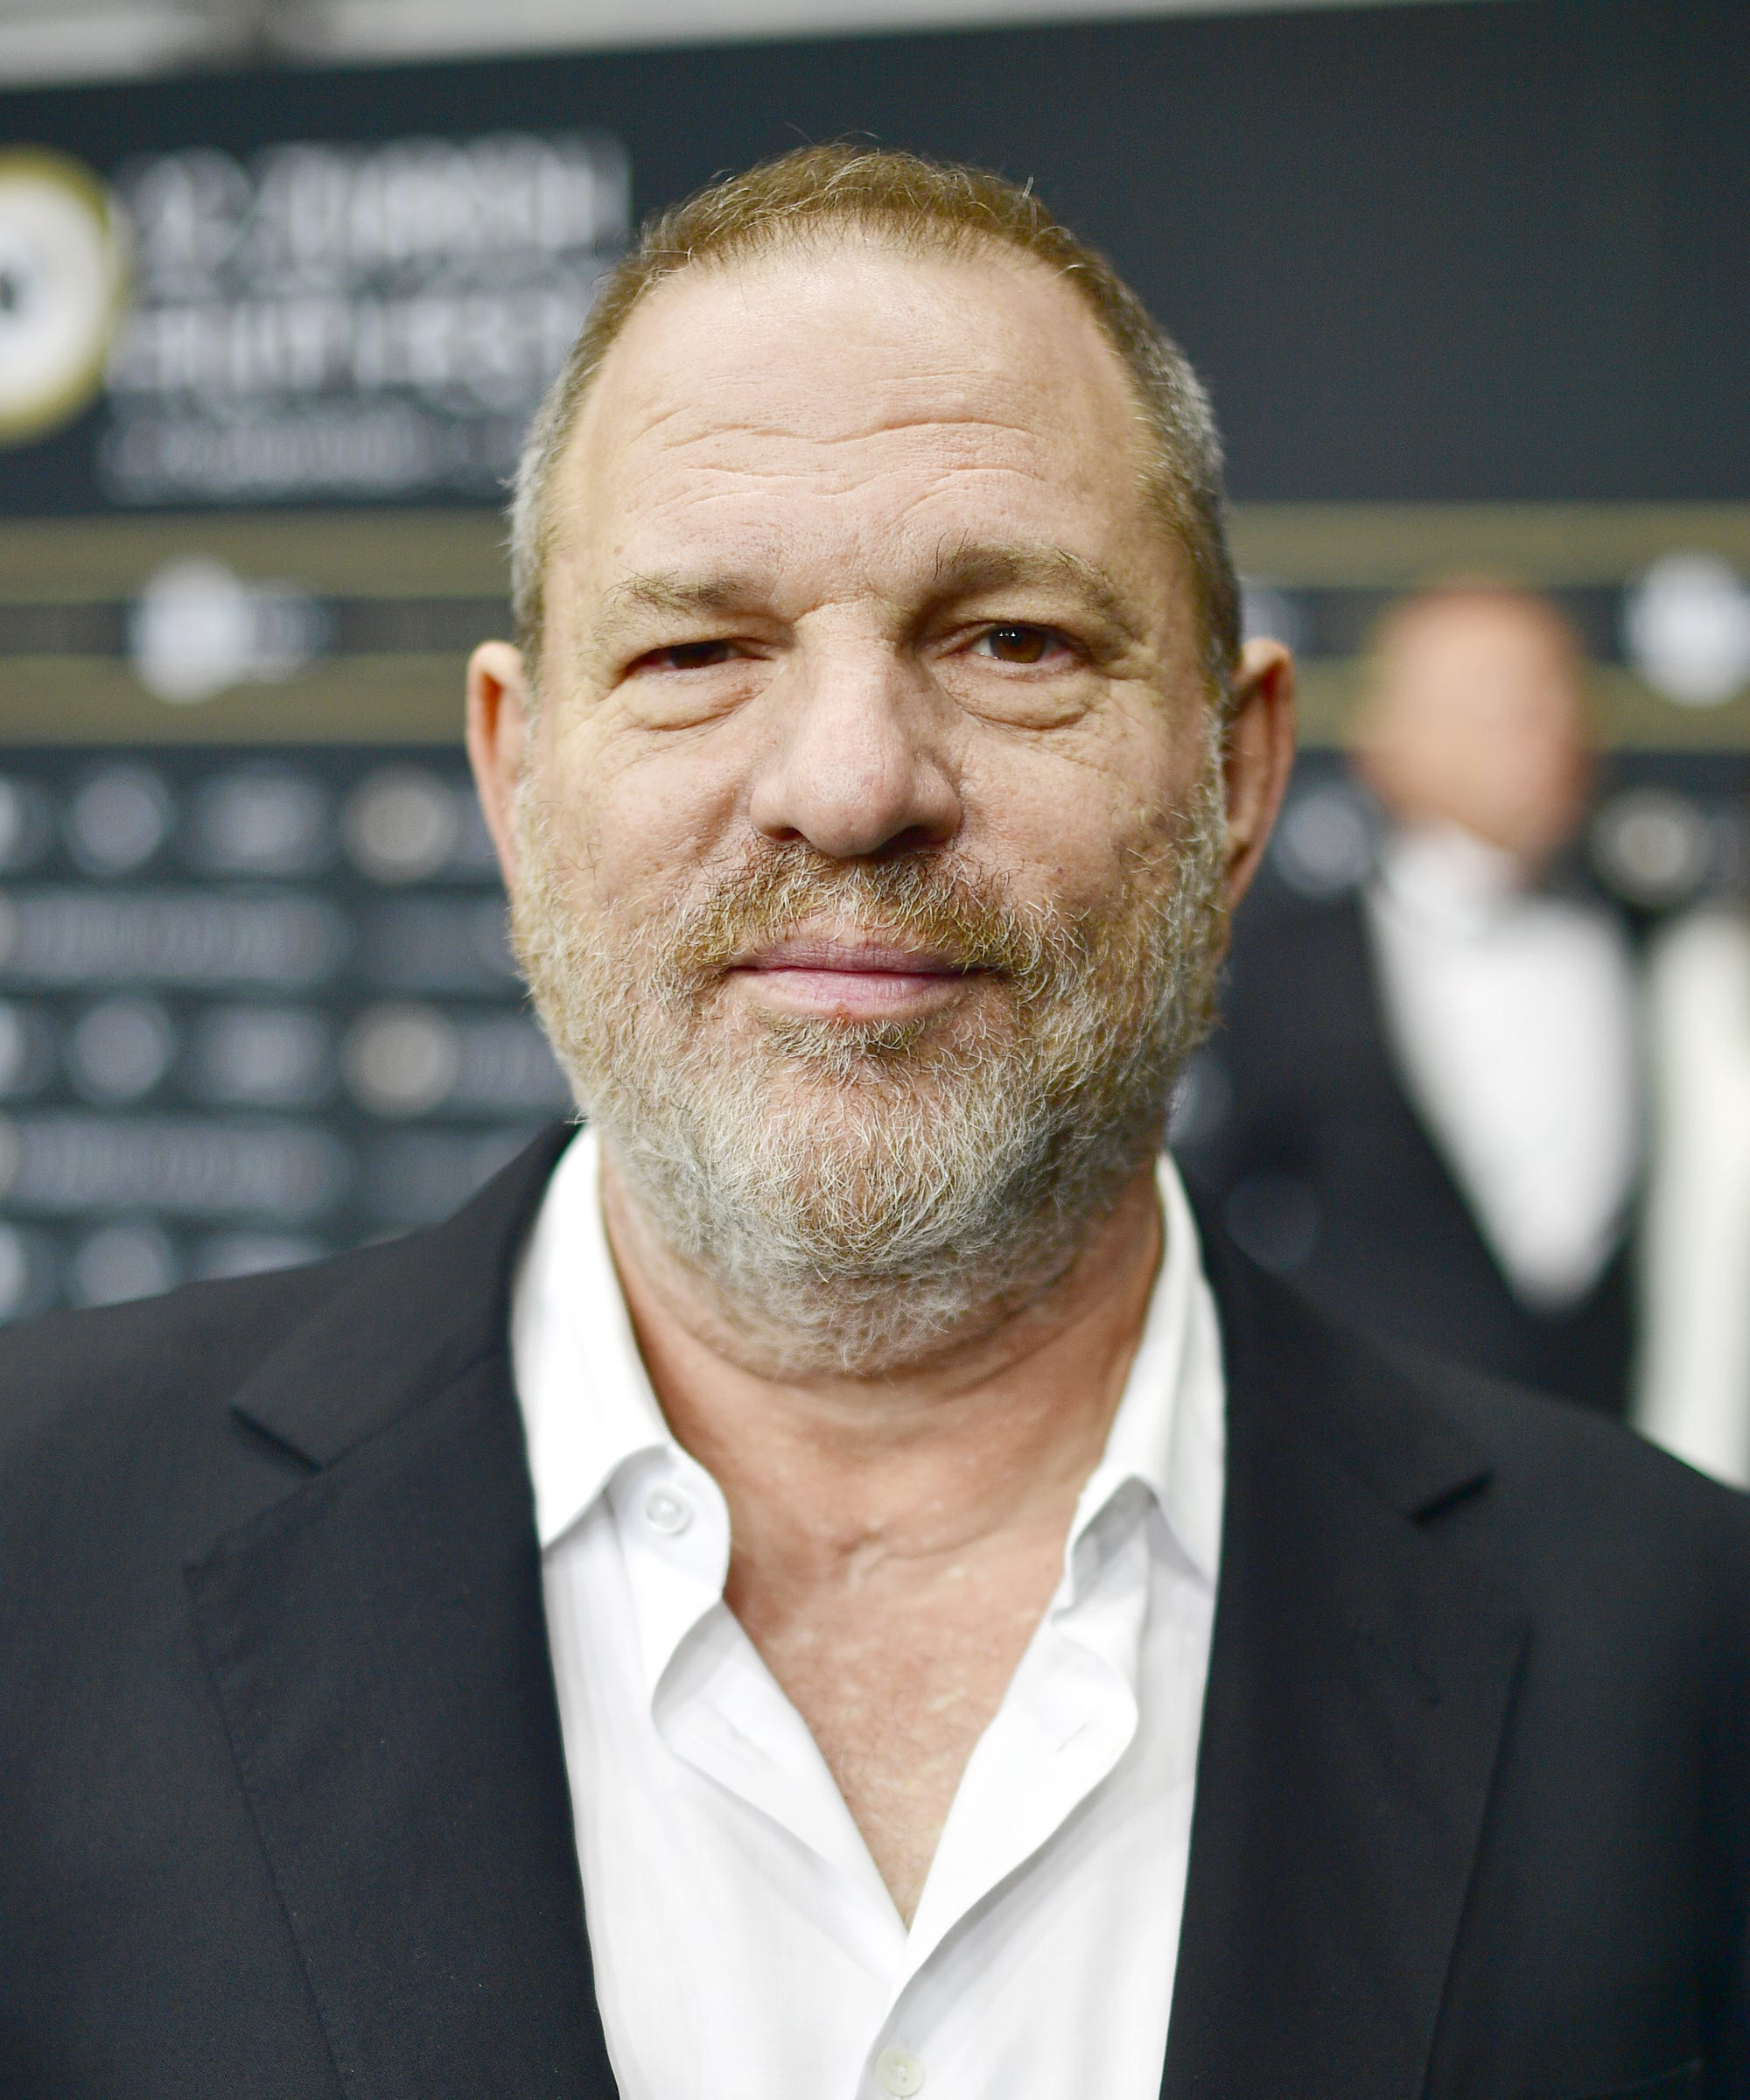 Young Harvey Weinstein Profile Scary Revelations